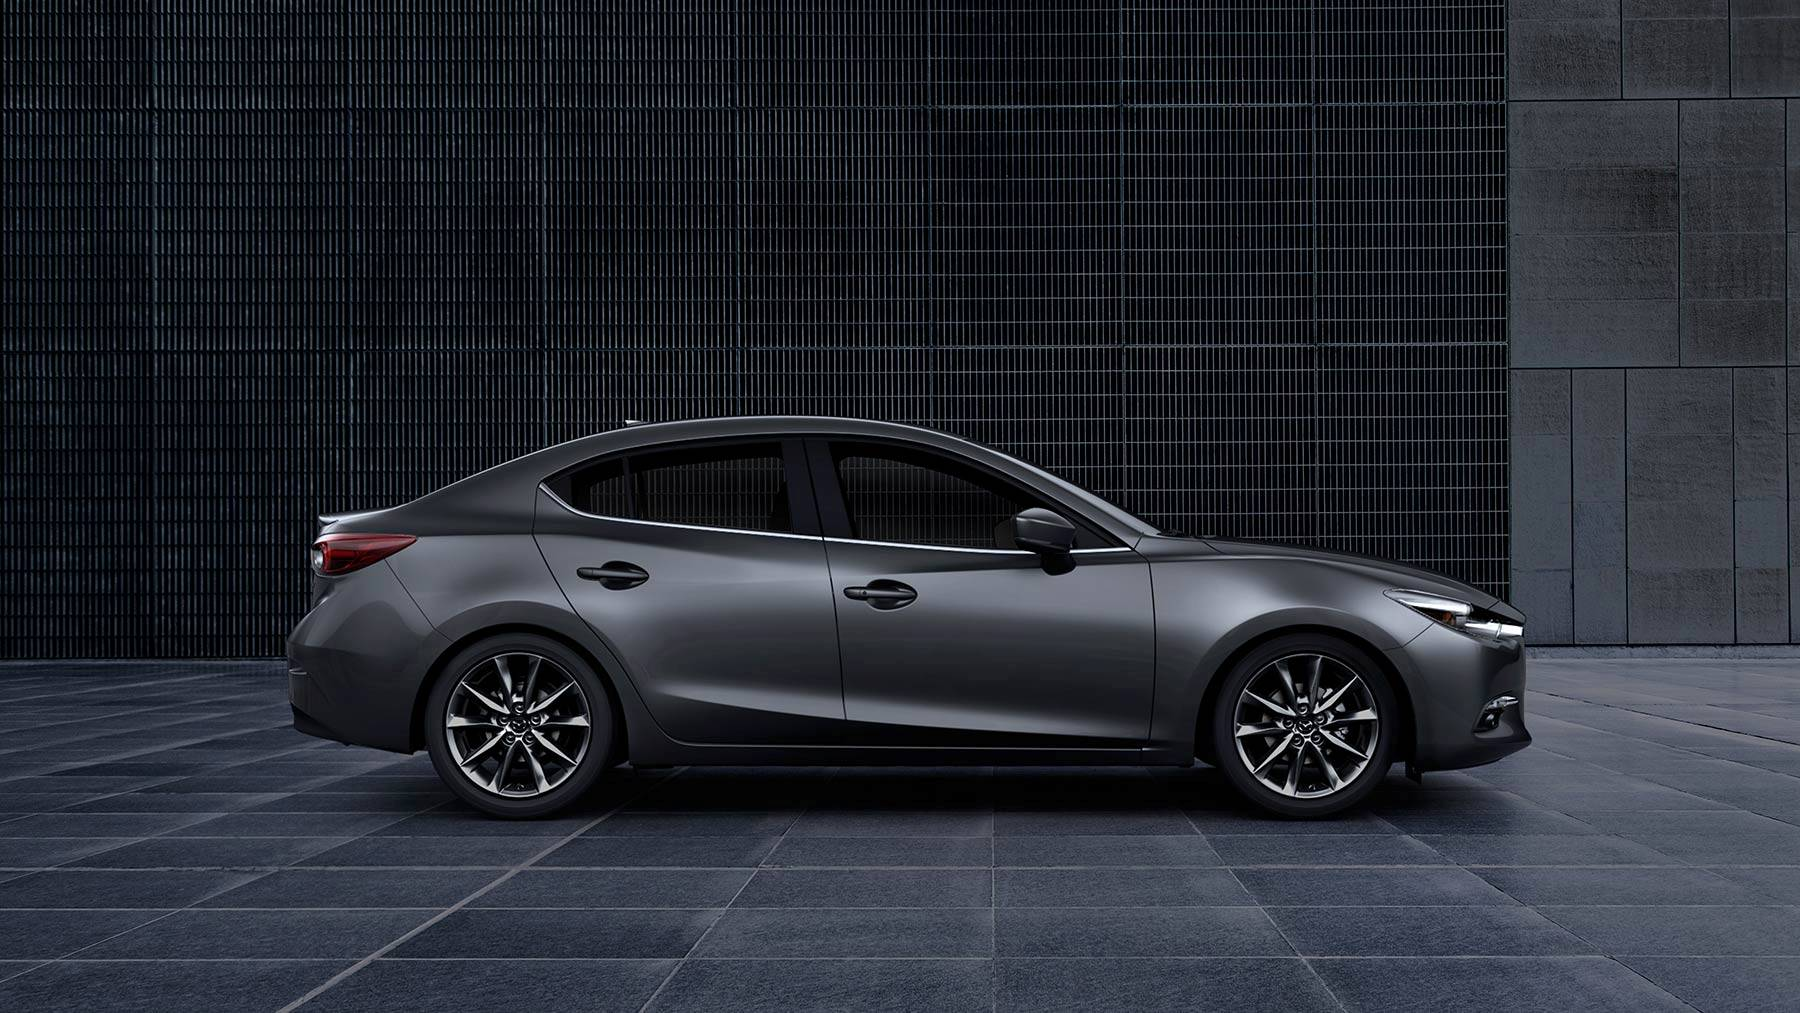 2018 Mazda3 for Sale in Webster, TX